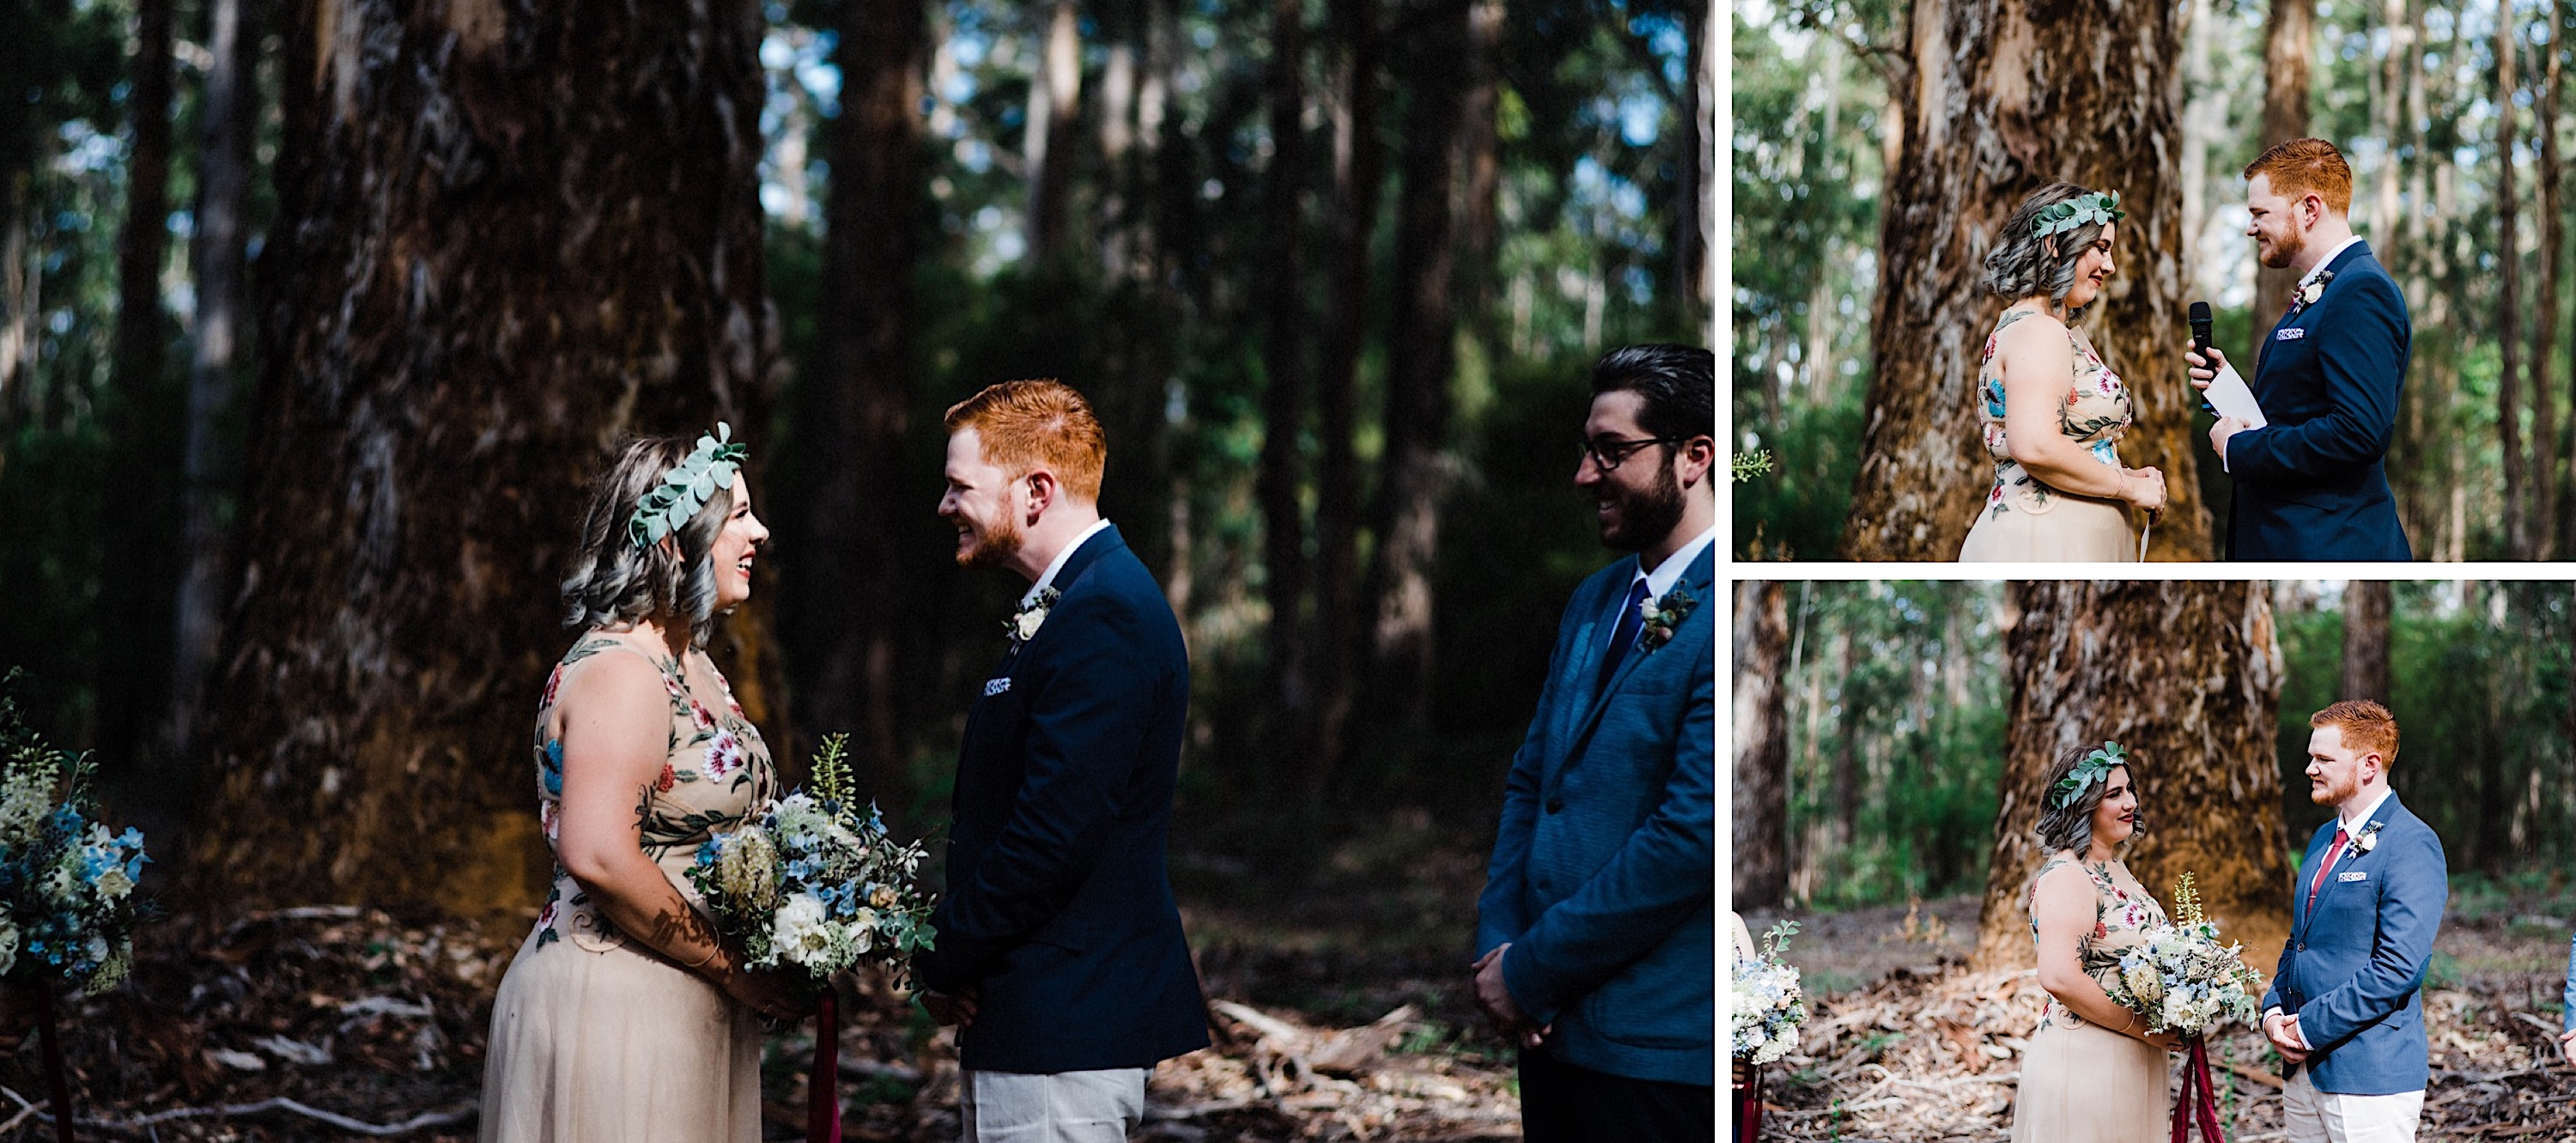 Authentic Wedding Photography of the Bride & Groom smiling and laugh together during their Donnelly River Wedding Ceremony.